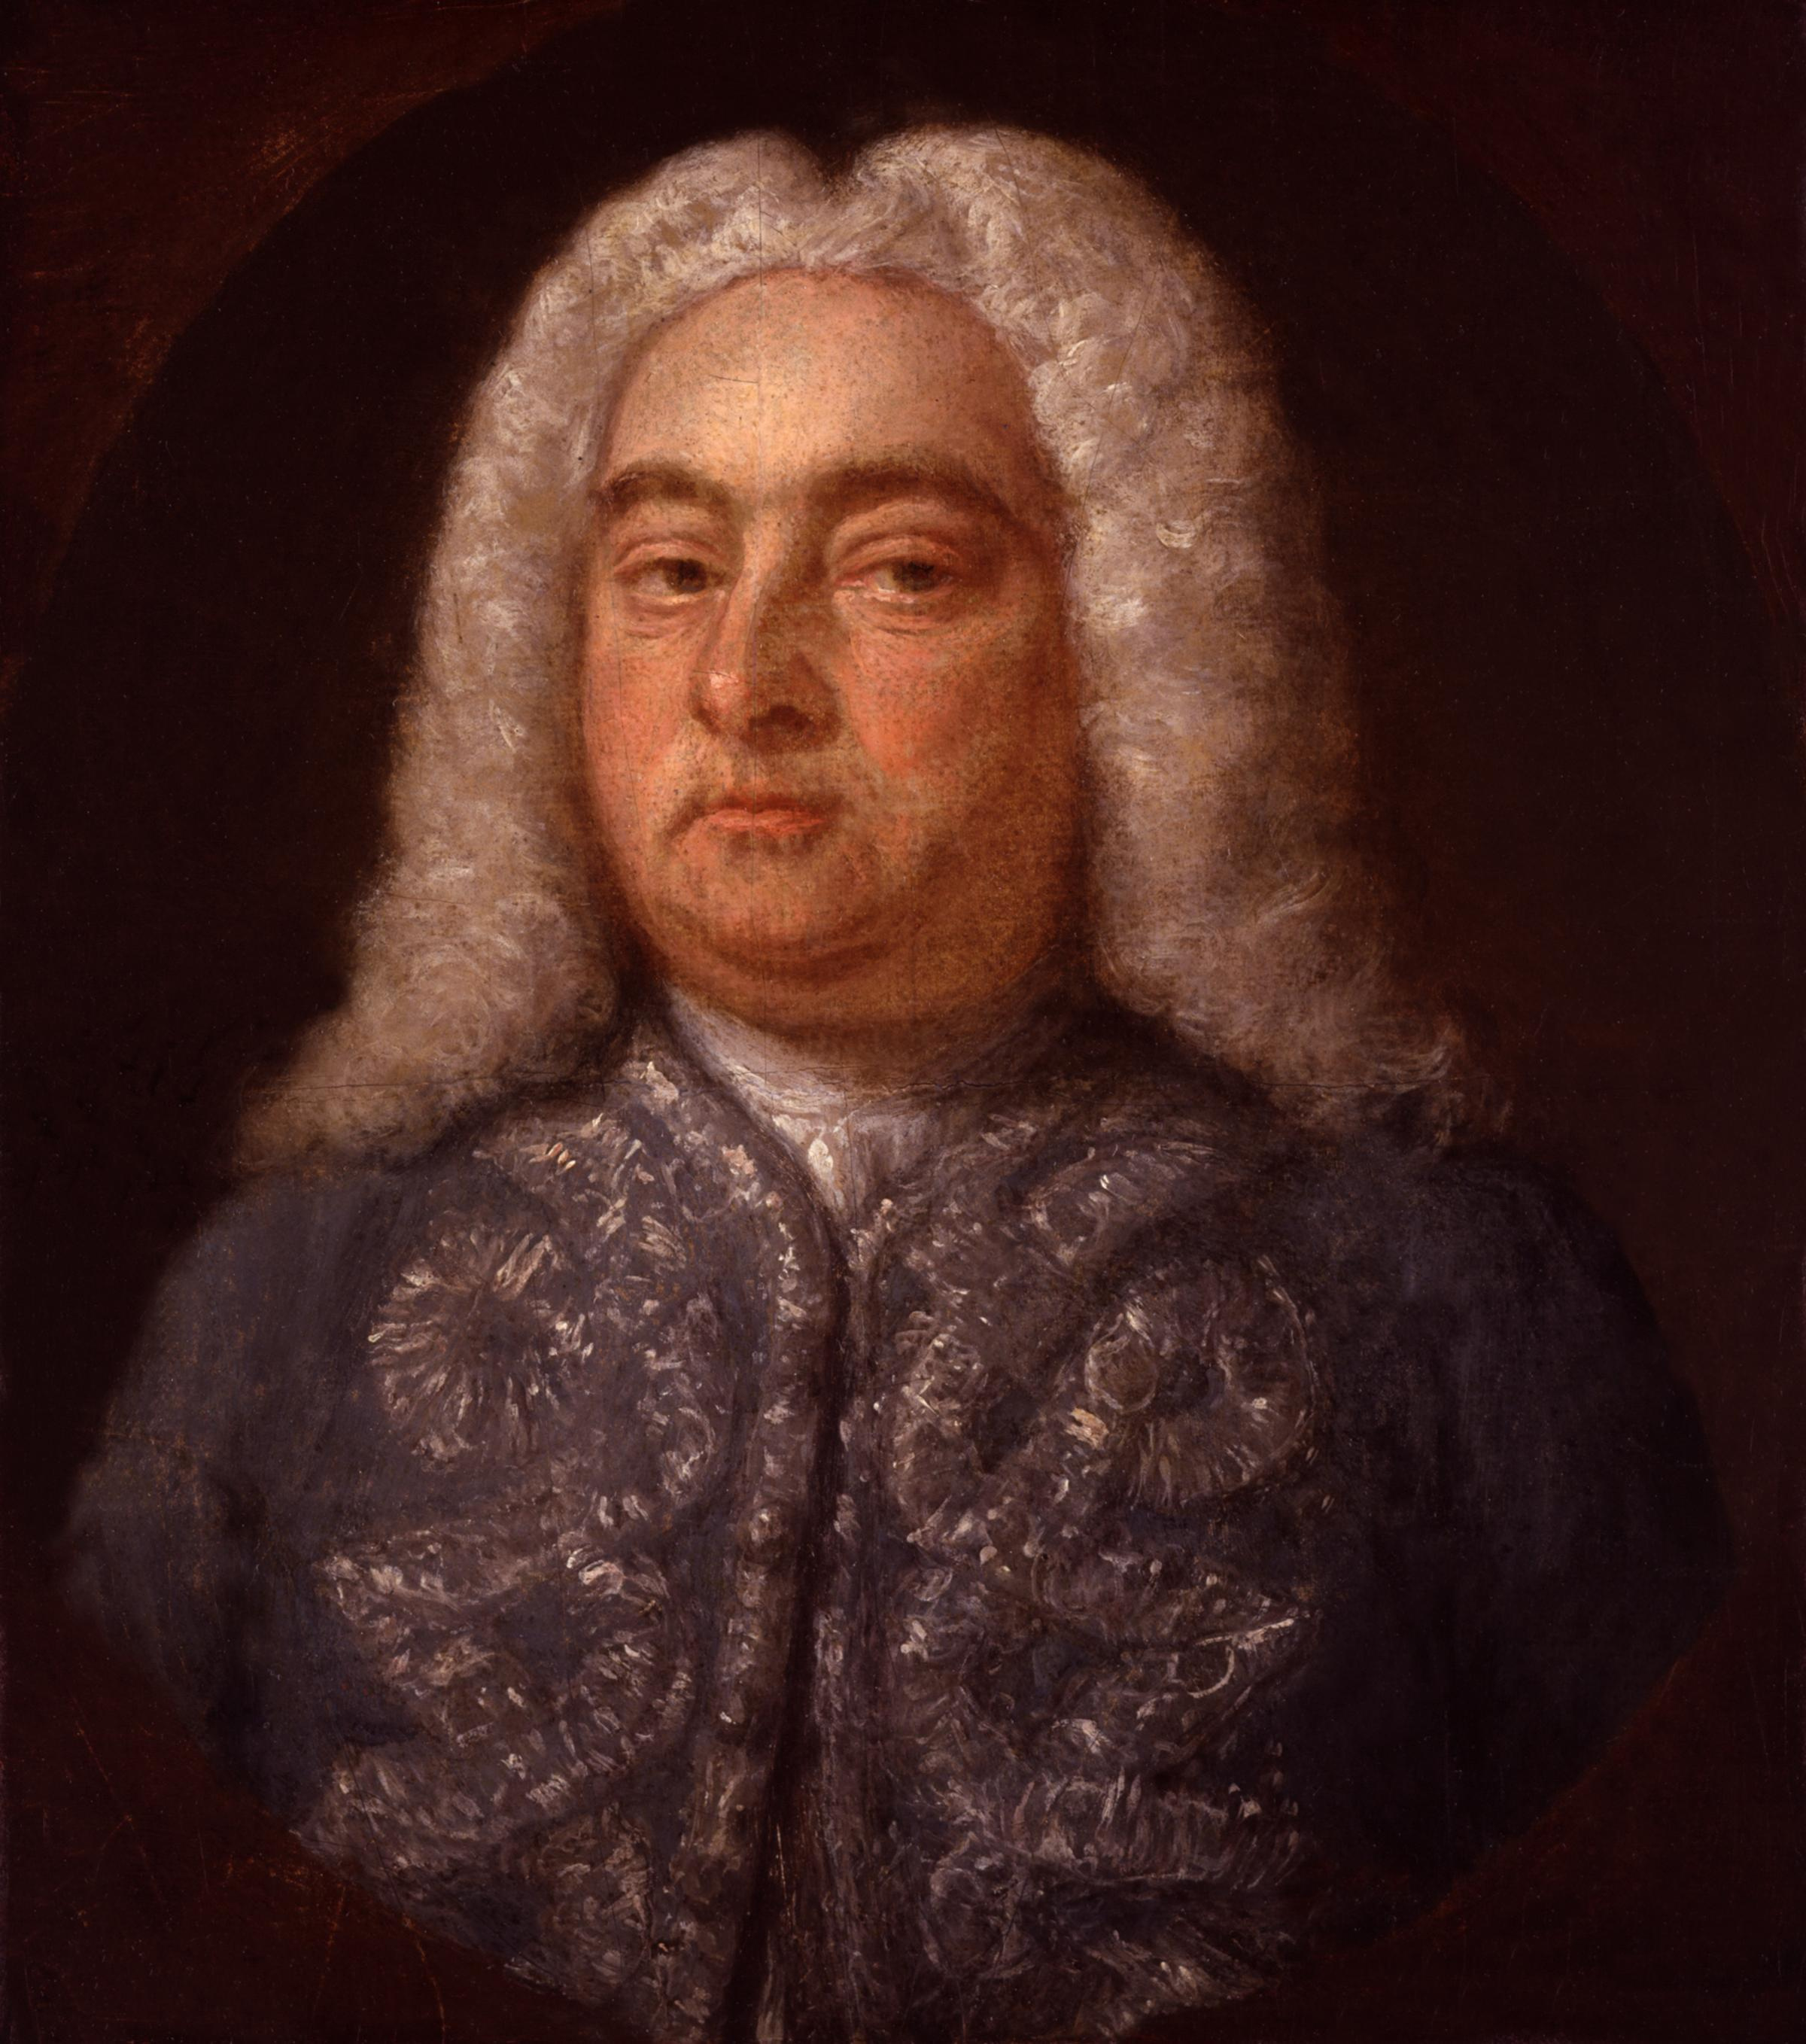 Painting by Francis Kyte of George Frideric Handel. Photo is in public domain in Wikipedia Commons.